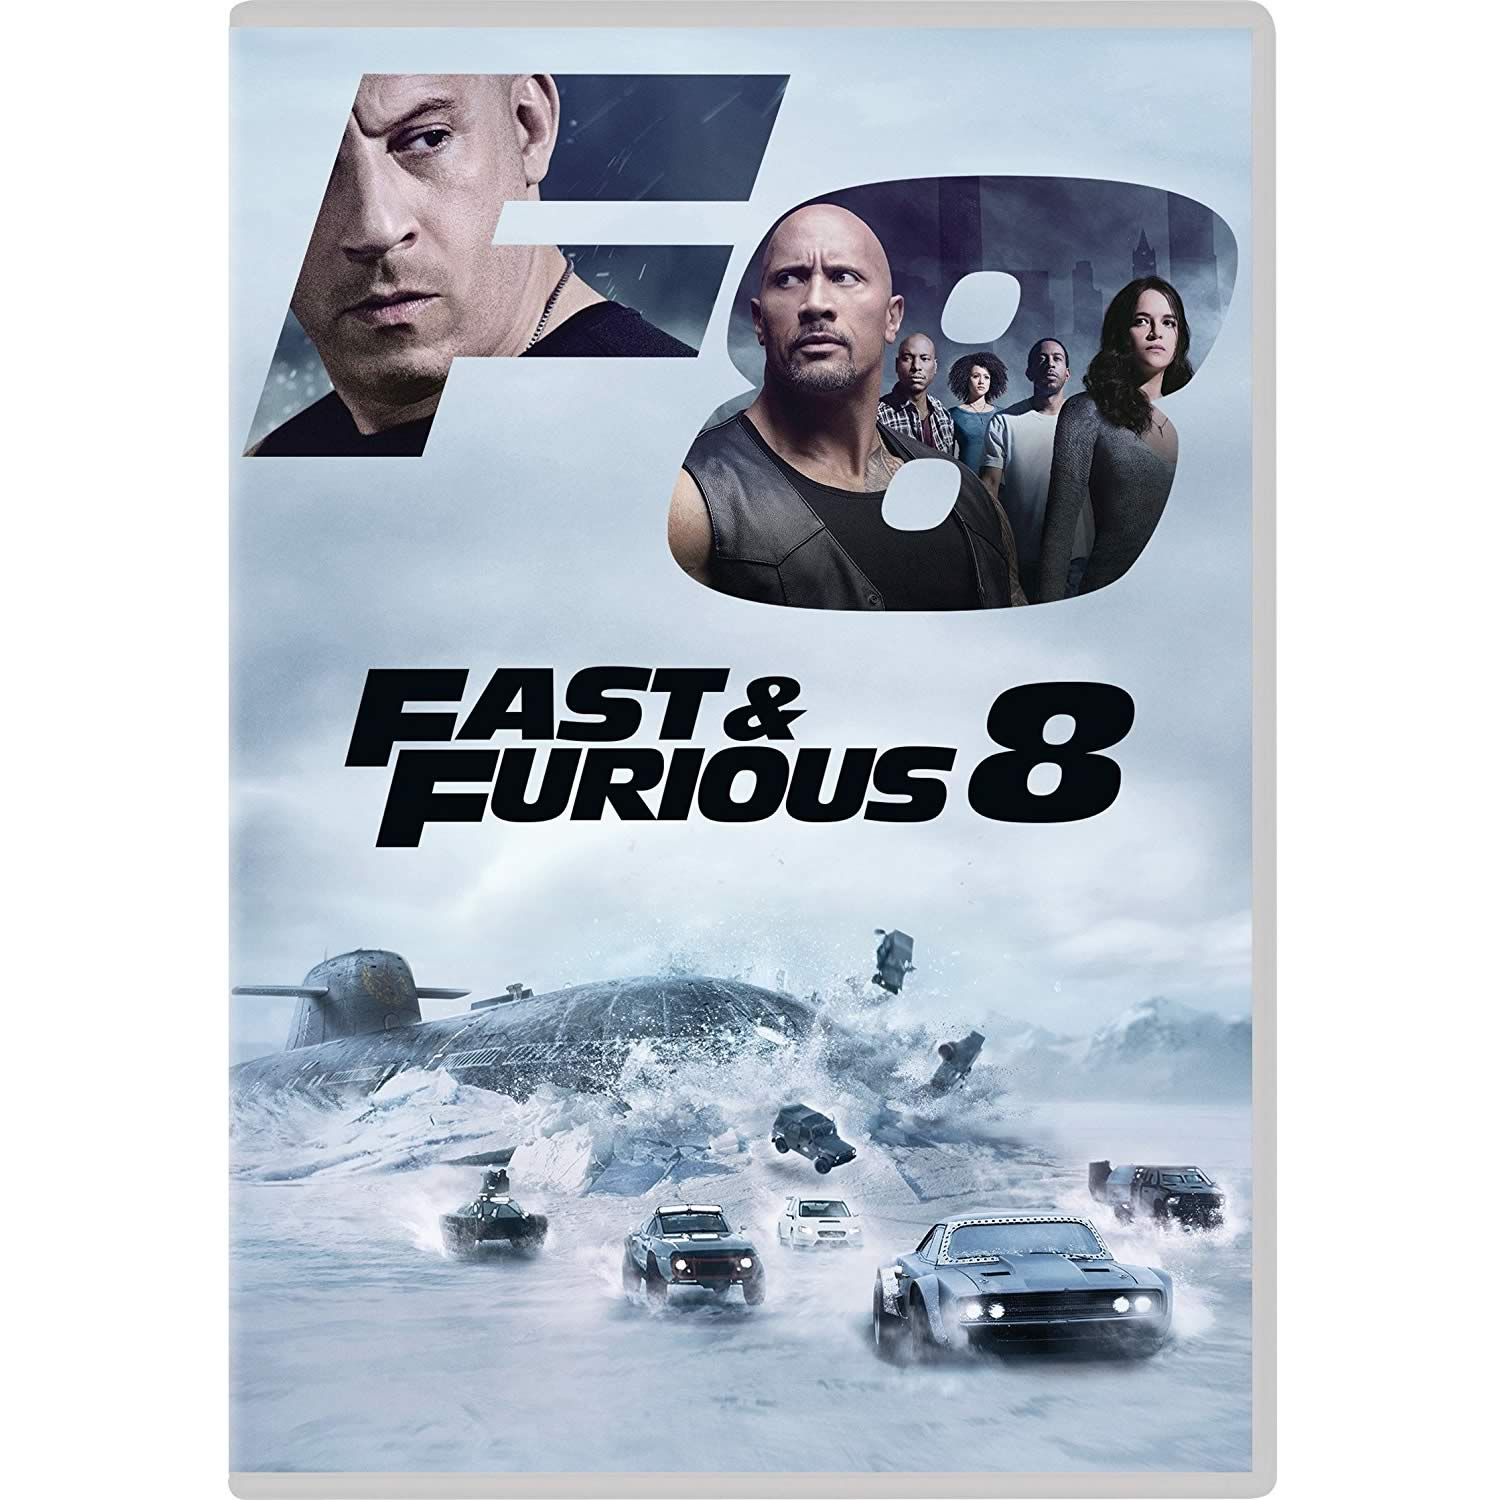 FAST & FURIOUS 8: THE FATE OF THE FURIOUS - FAST & FURIOUS: ΜΑΧΗΤΕΣ ΤΩΝ ΔΡΟΜΩΝ 8 (DVD)